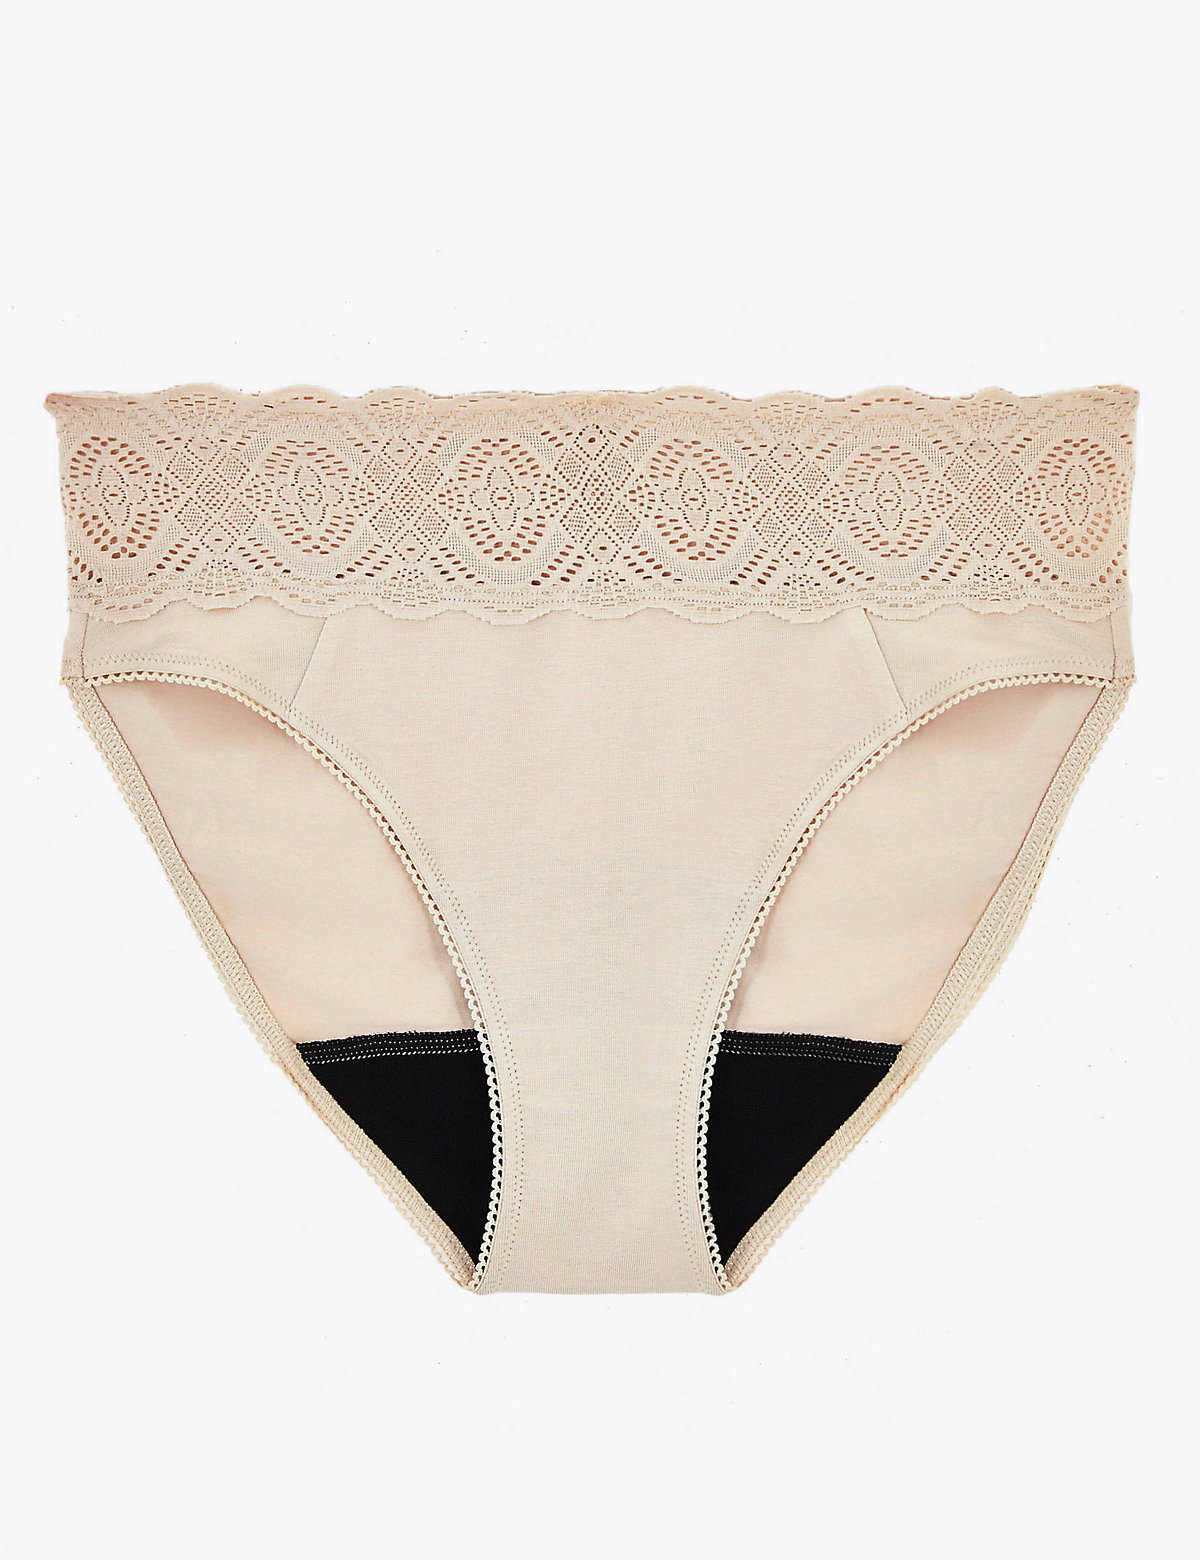 Confidence Anti-Leak Cotton & Lace High Leg Knickers